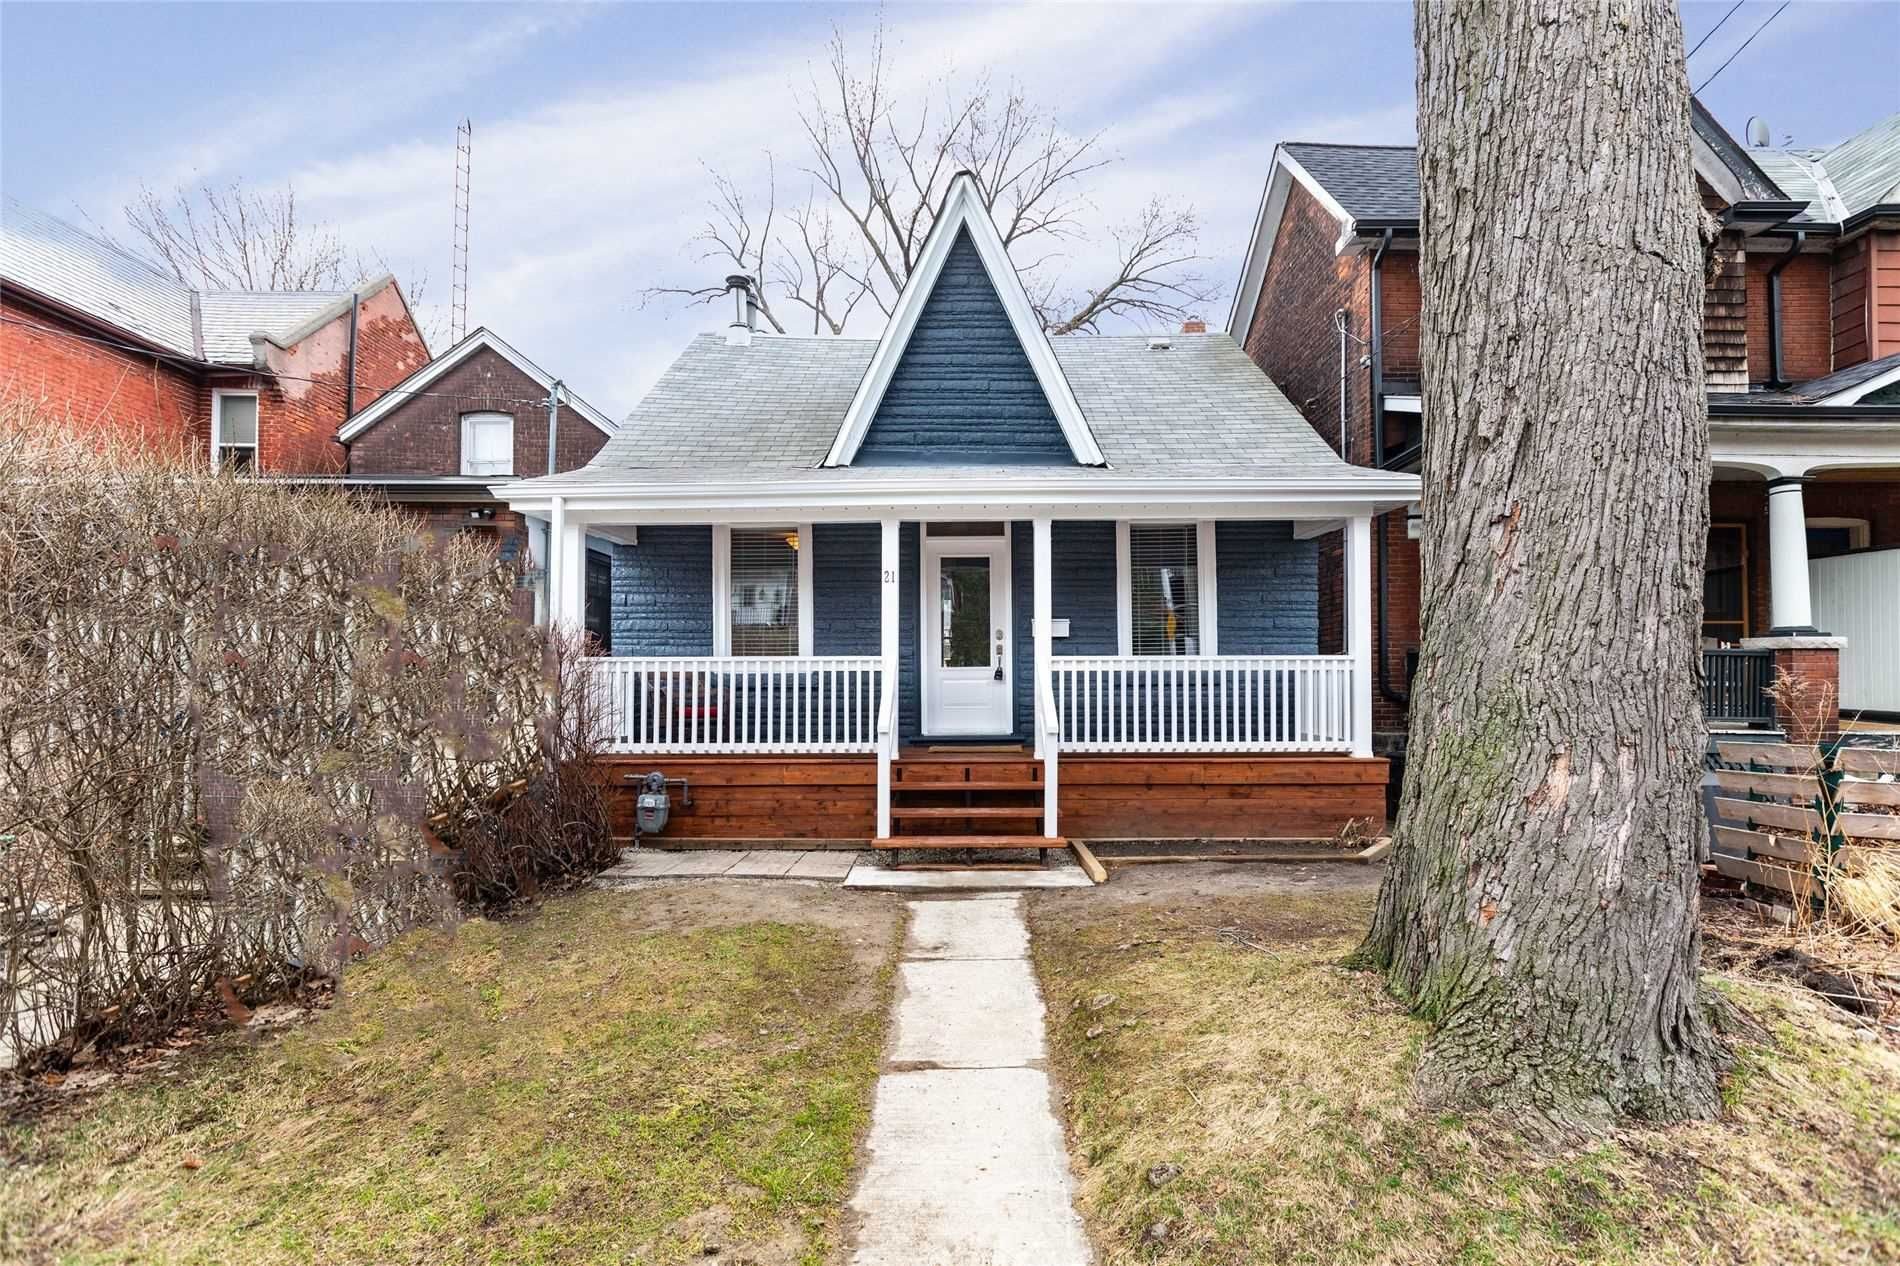 Main Photo: 21 Callender Street in Toronto: Roncesvalles House (1 1/2 Storey) for sale (Toronto W01)  : MLS®# W5205803